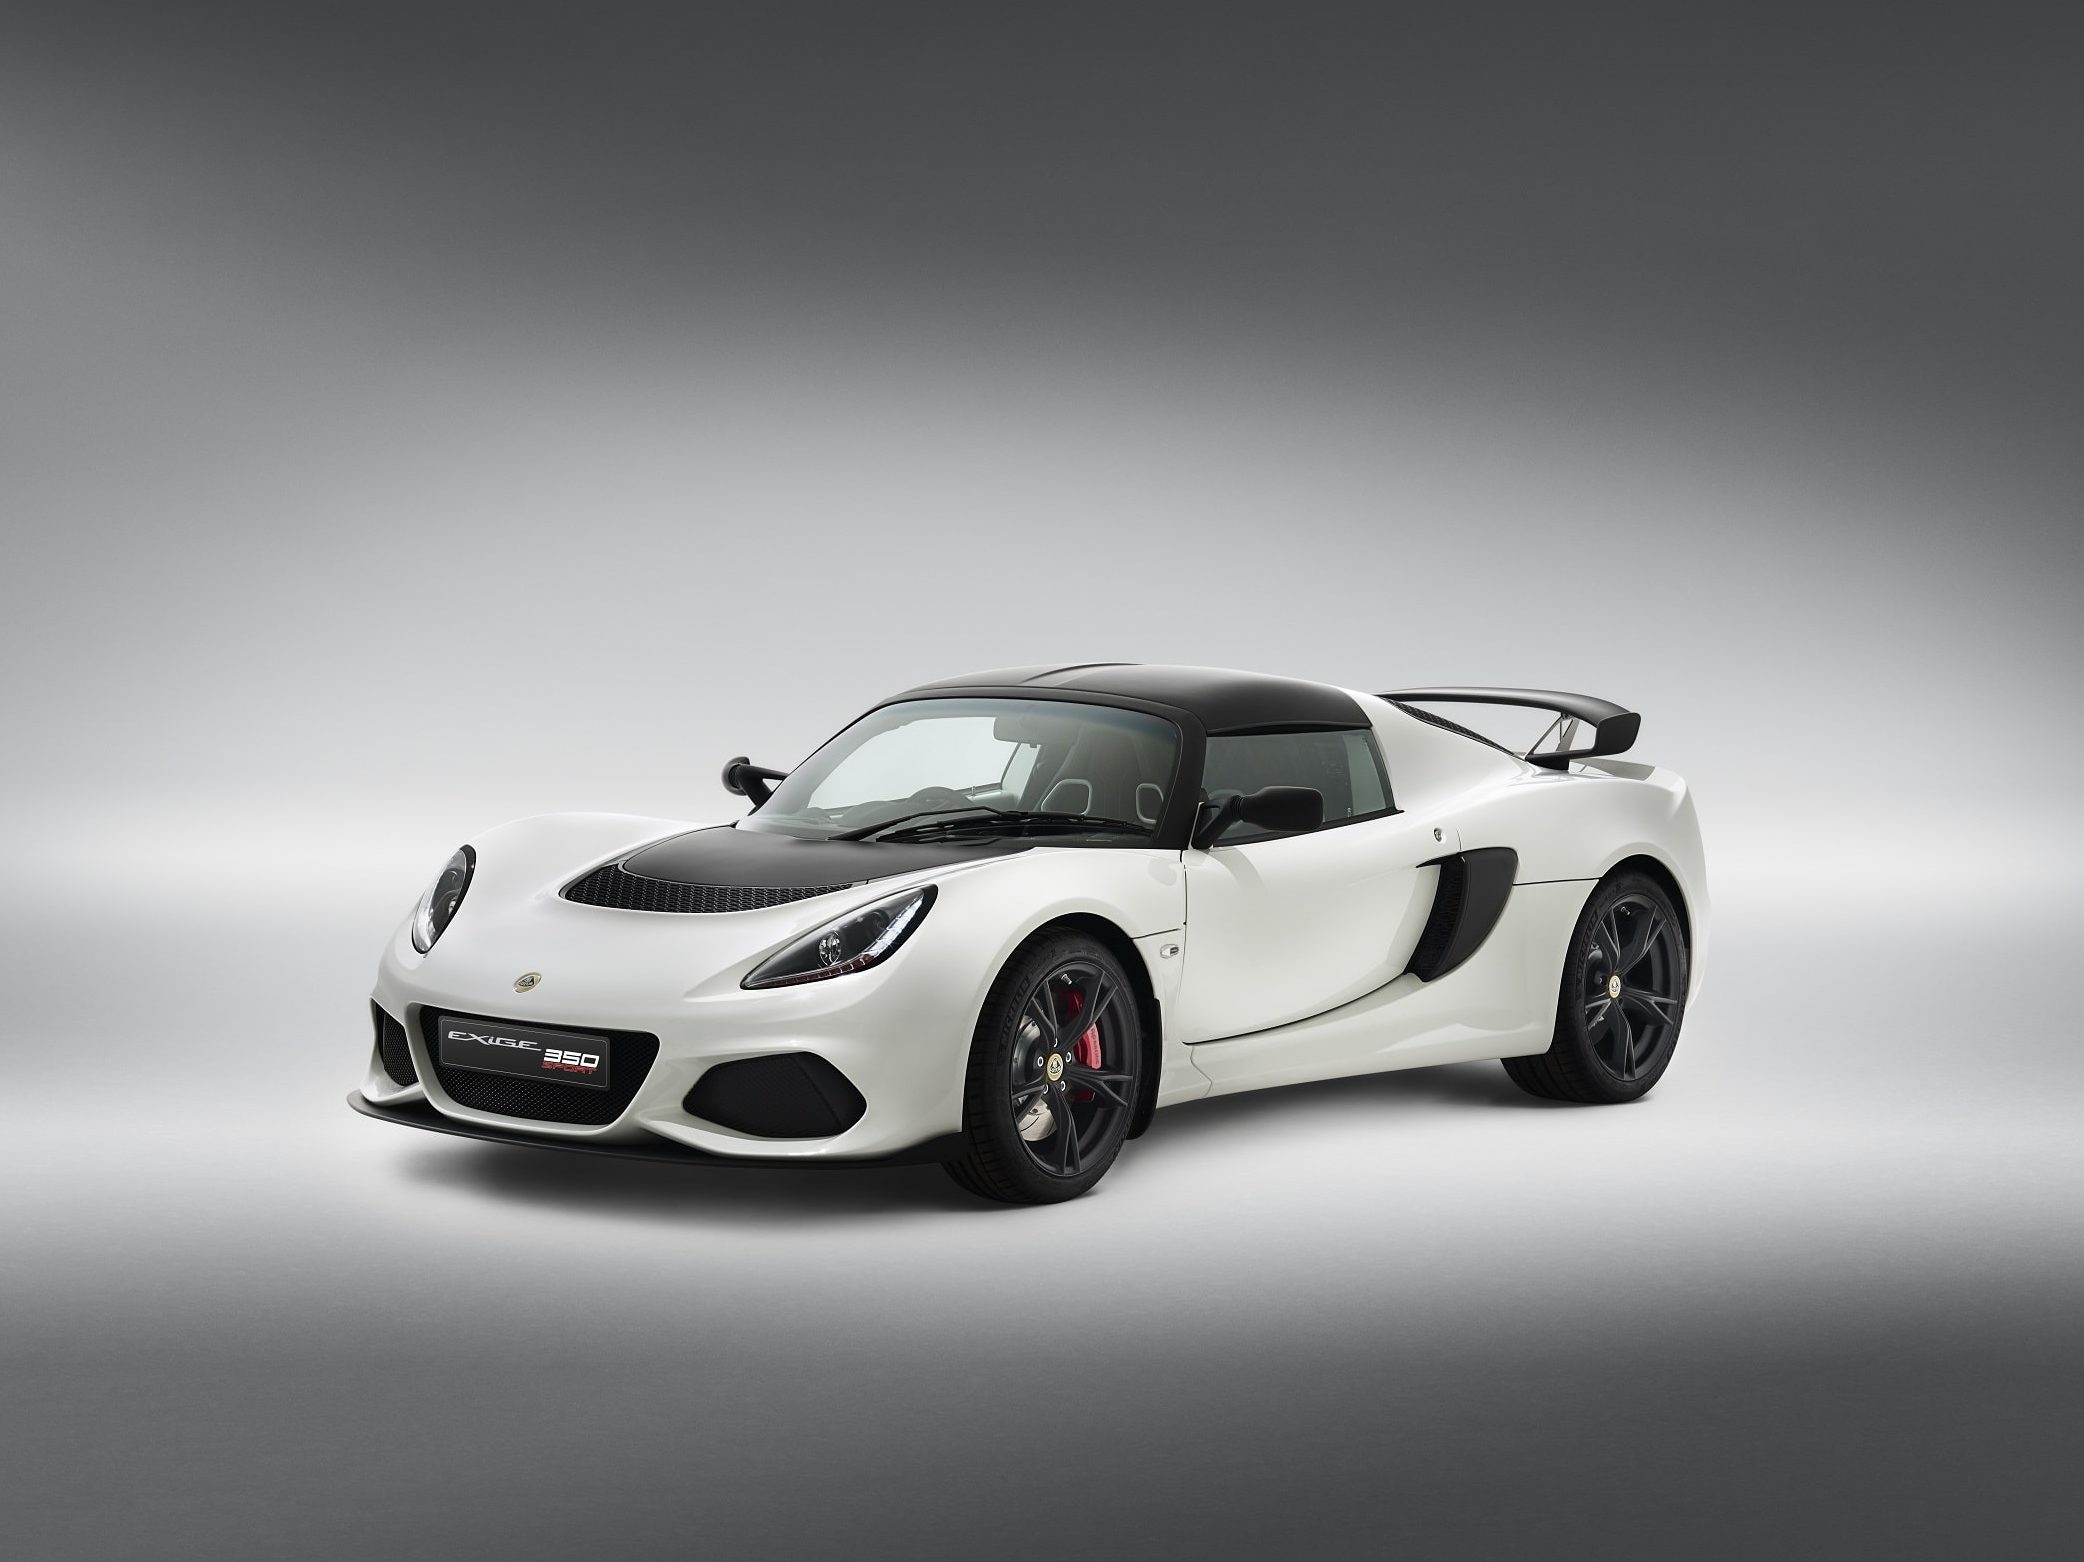 Lotus Exige 350 Sport - Bauden racing cars